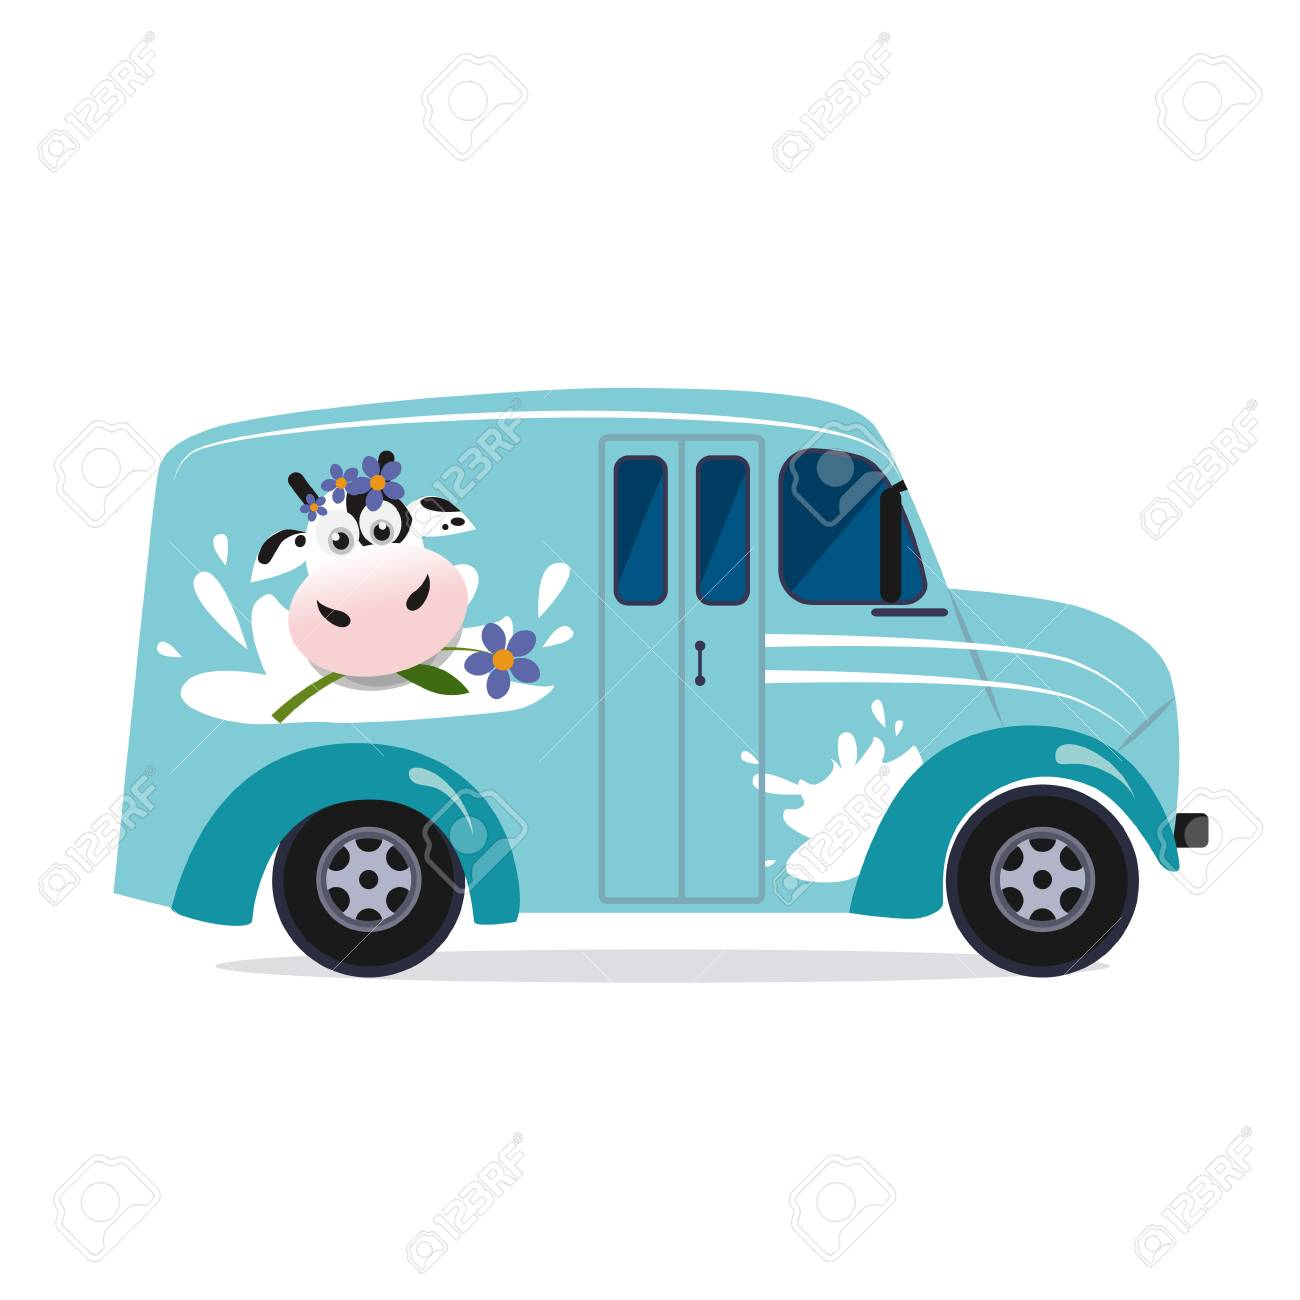 Vector modern flat design illustration on dairy milk delivery service local delivery truck - 128163214